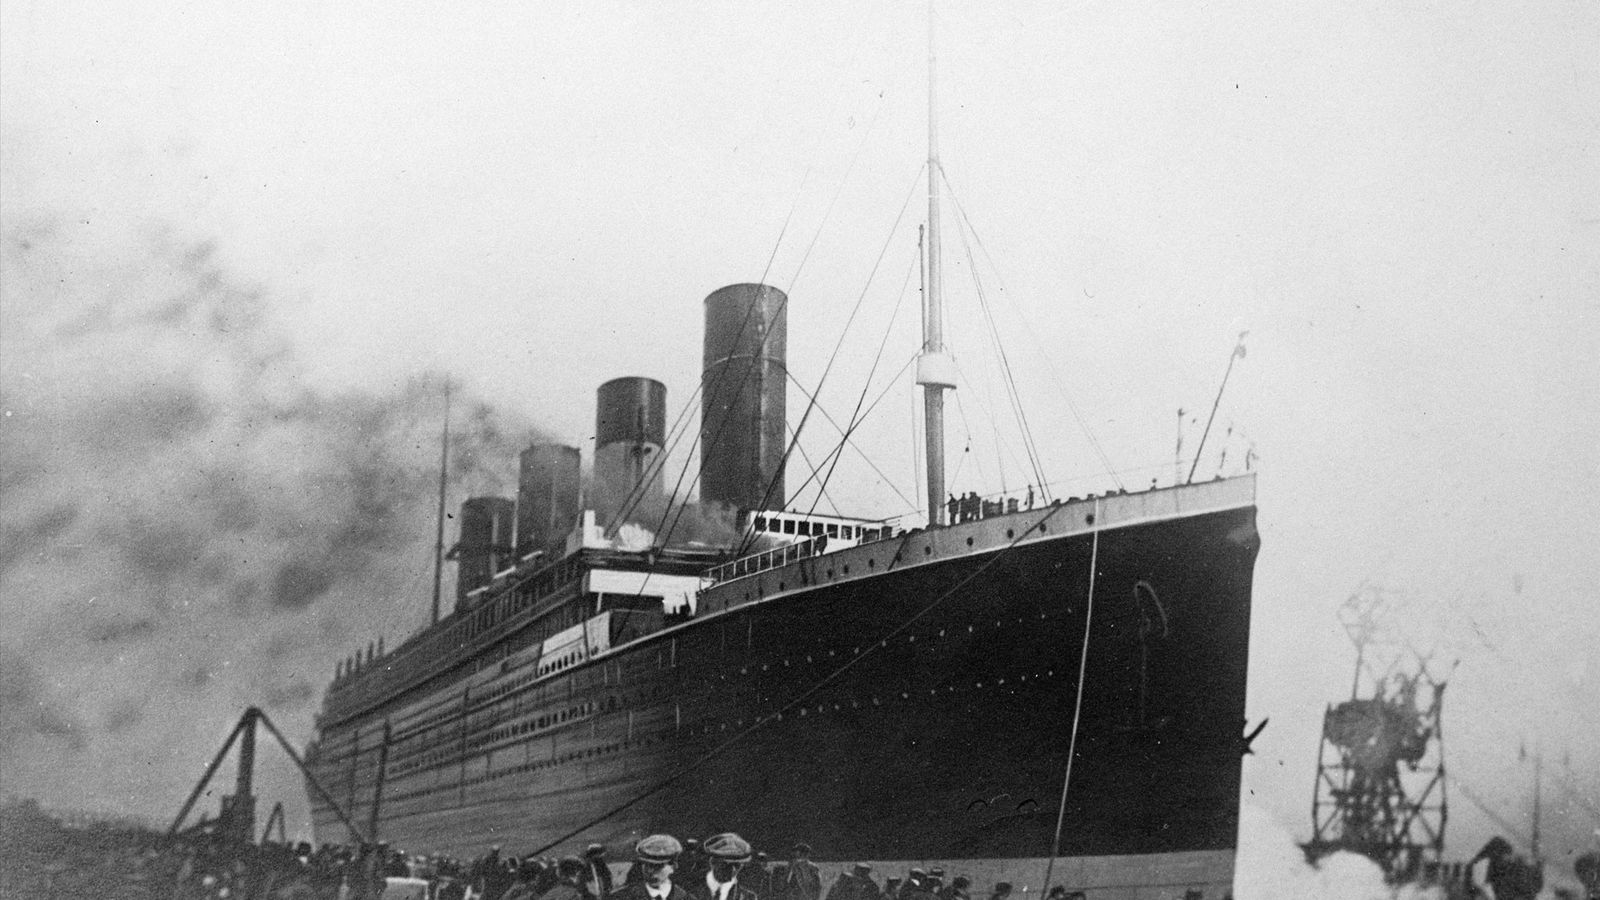 RMS Titanic was outfitted with wireless technology that allowed passengers to send messages while at sea.